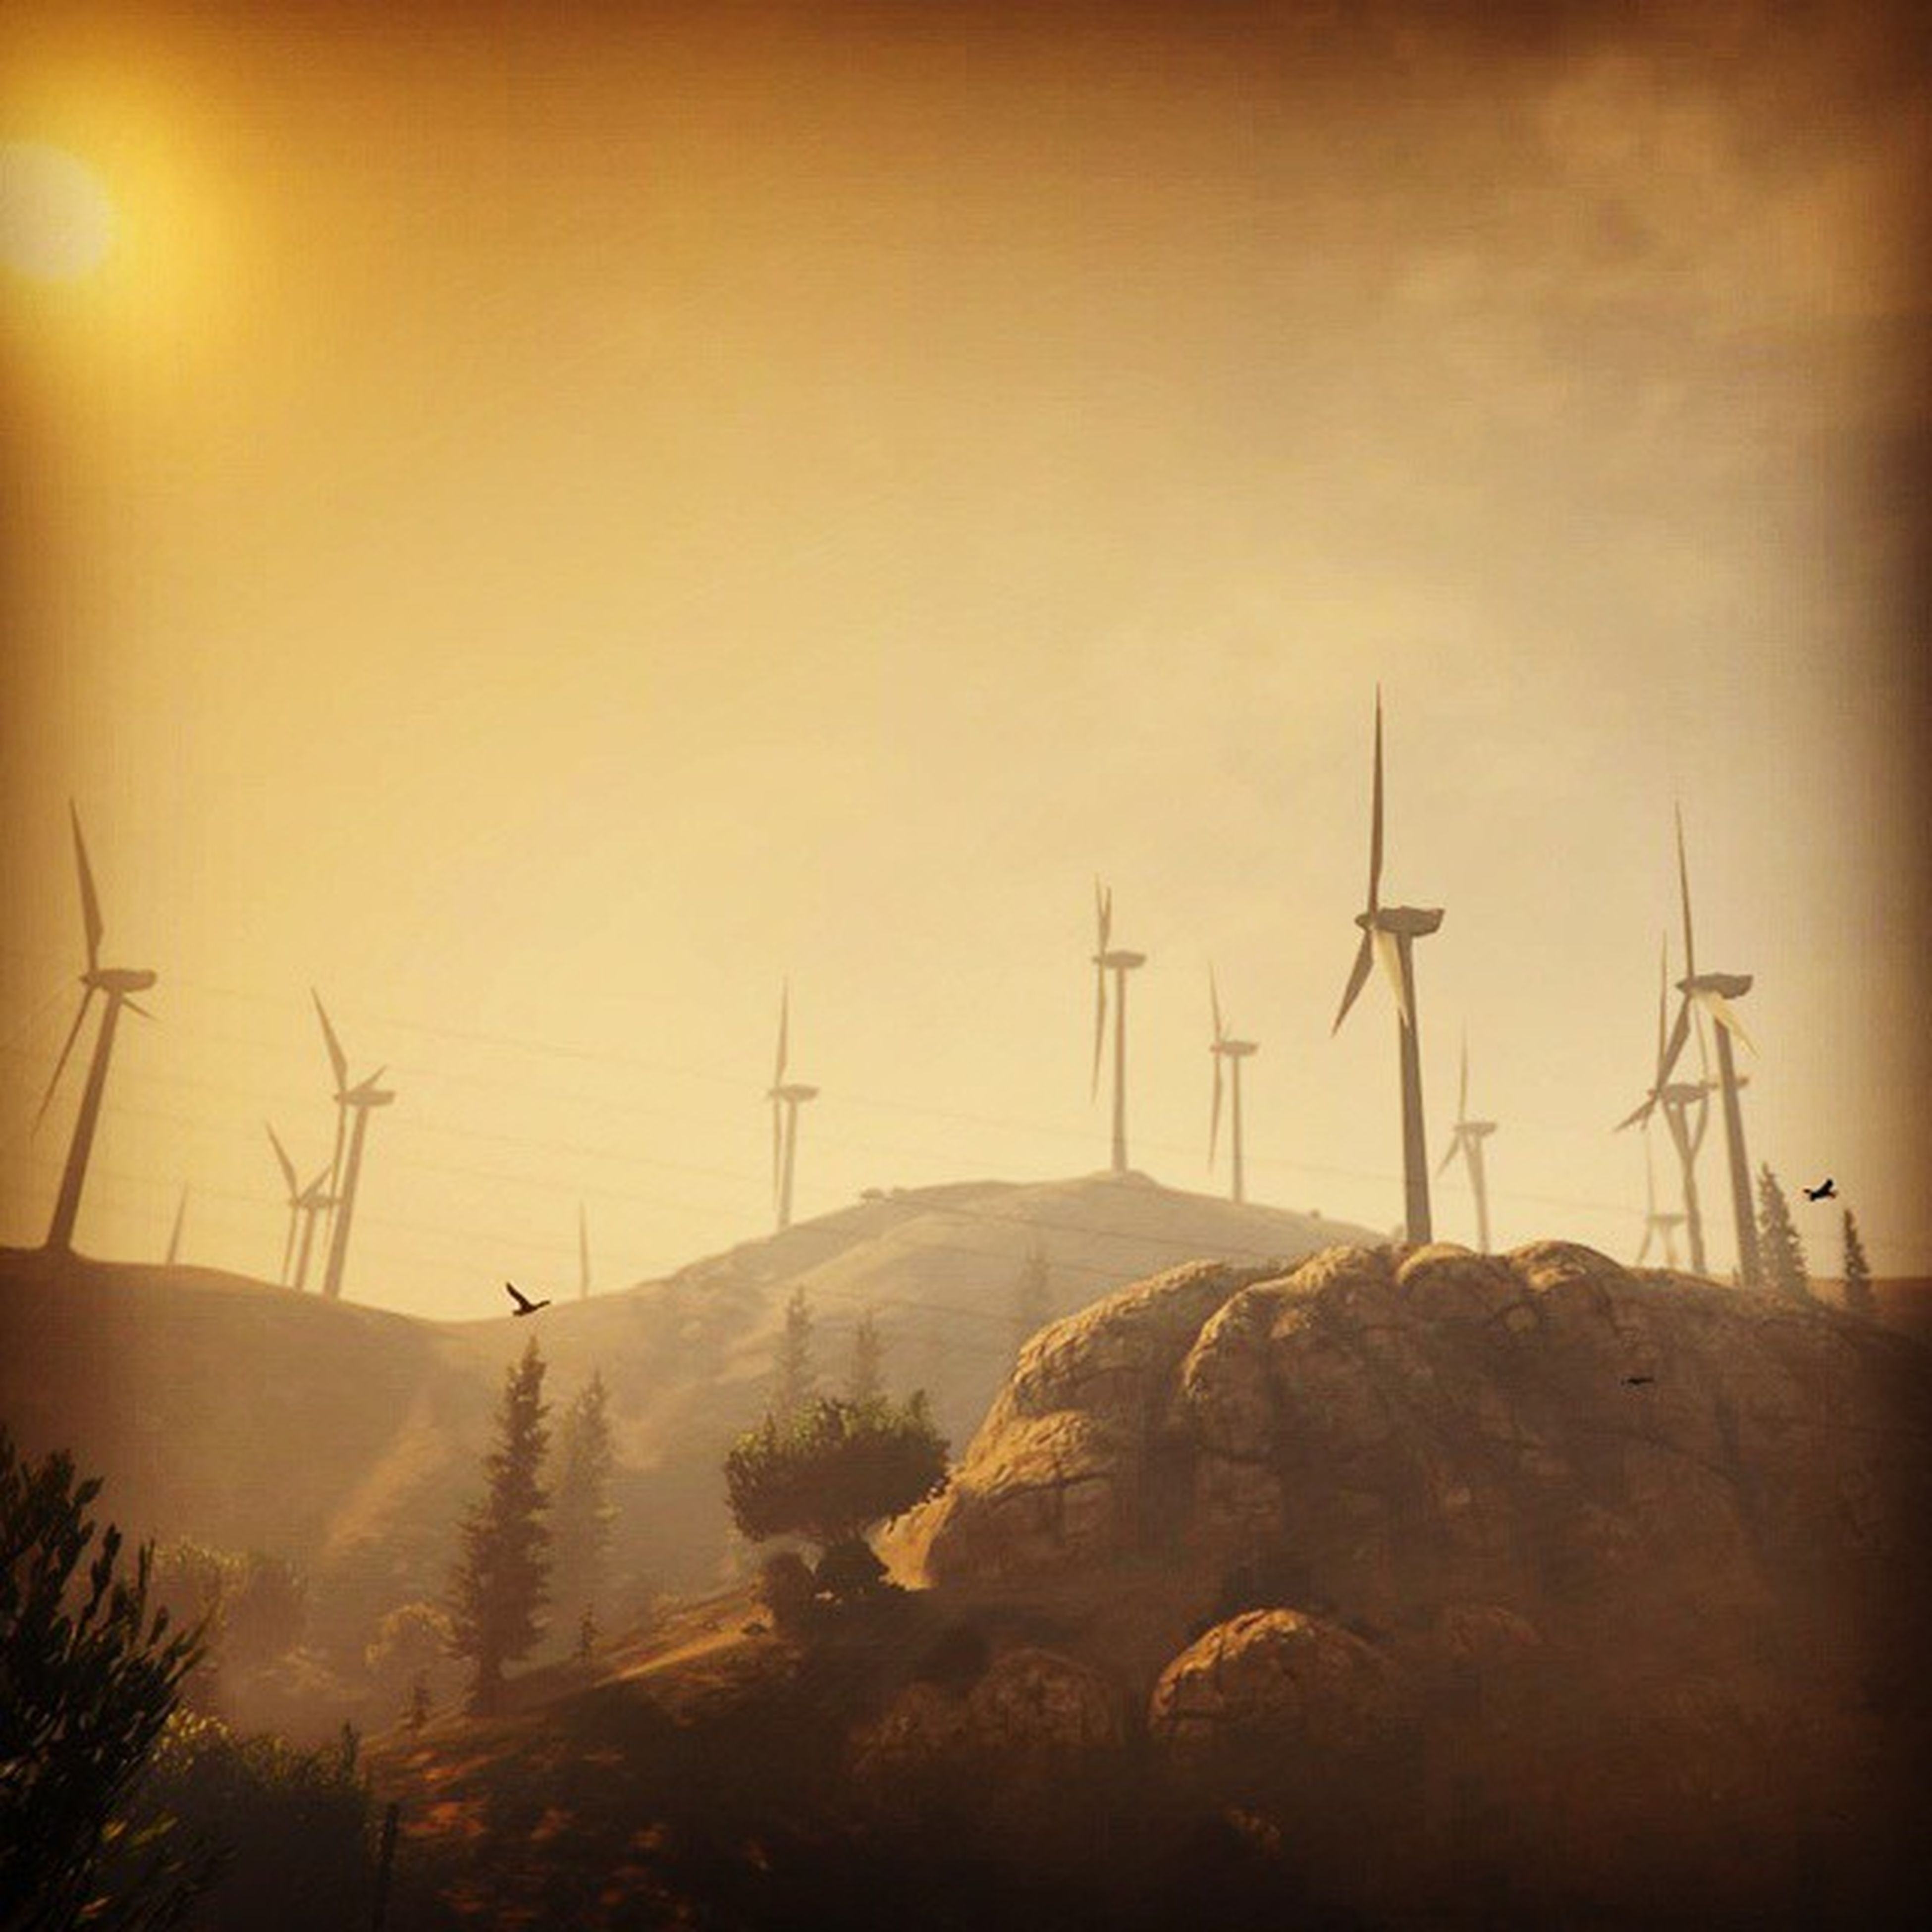 wind turbine, wind power, alternative energy, renewable energy, environmental conservation, fuel and power generation, windmill, landscape, tranquility, technology, tranquil scene, traditional windmill, nature, scenics, mountain, copy space, clear sky, non-urban scene, field, beauty in nature